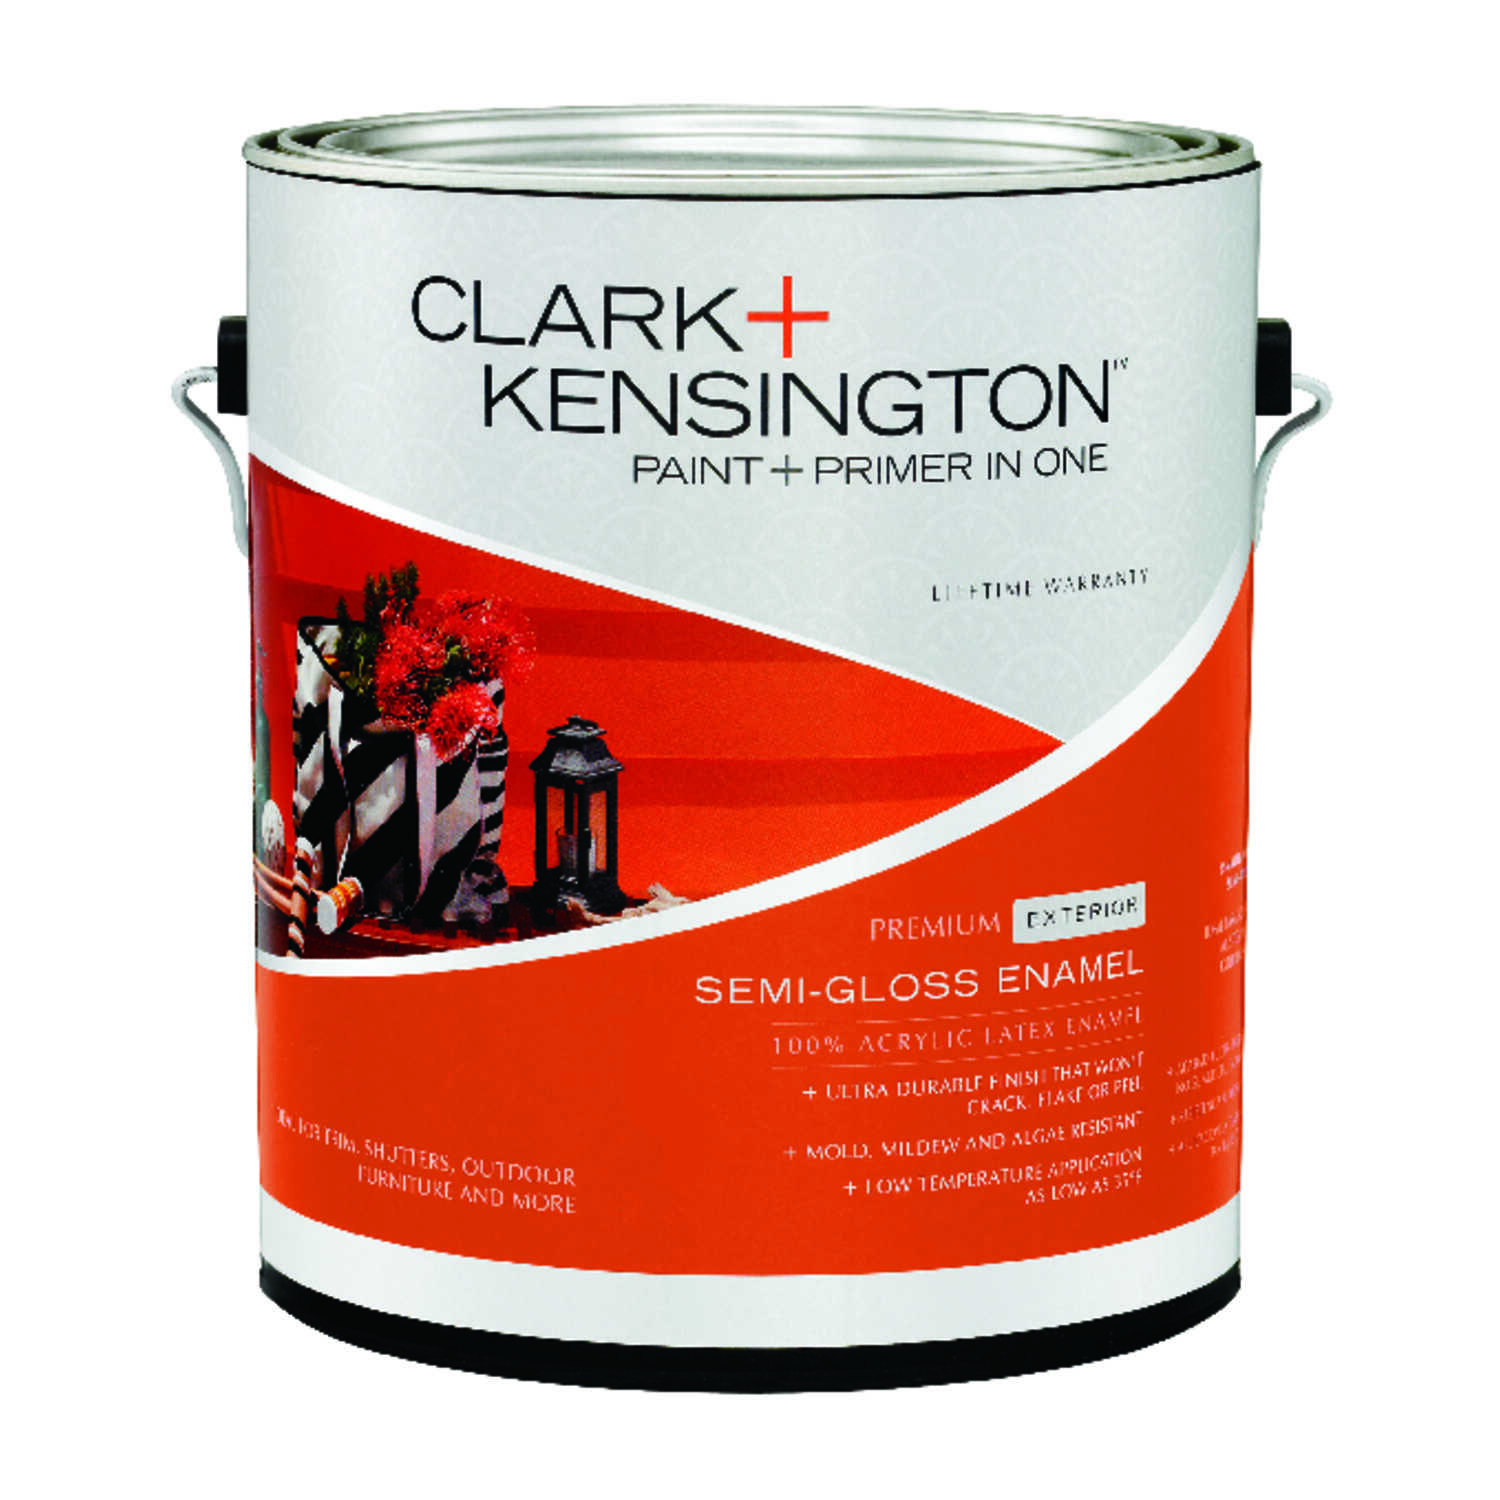 Clark+Kensington  Semi-Gloss  Designer White  Acrylic Latex  House/Trim Paint  1 gal.